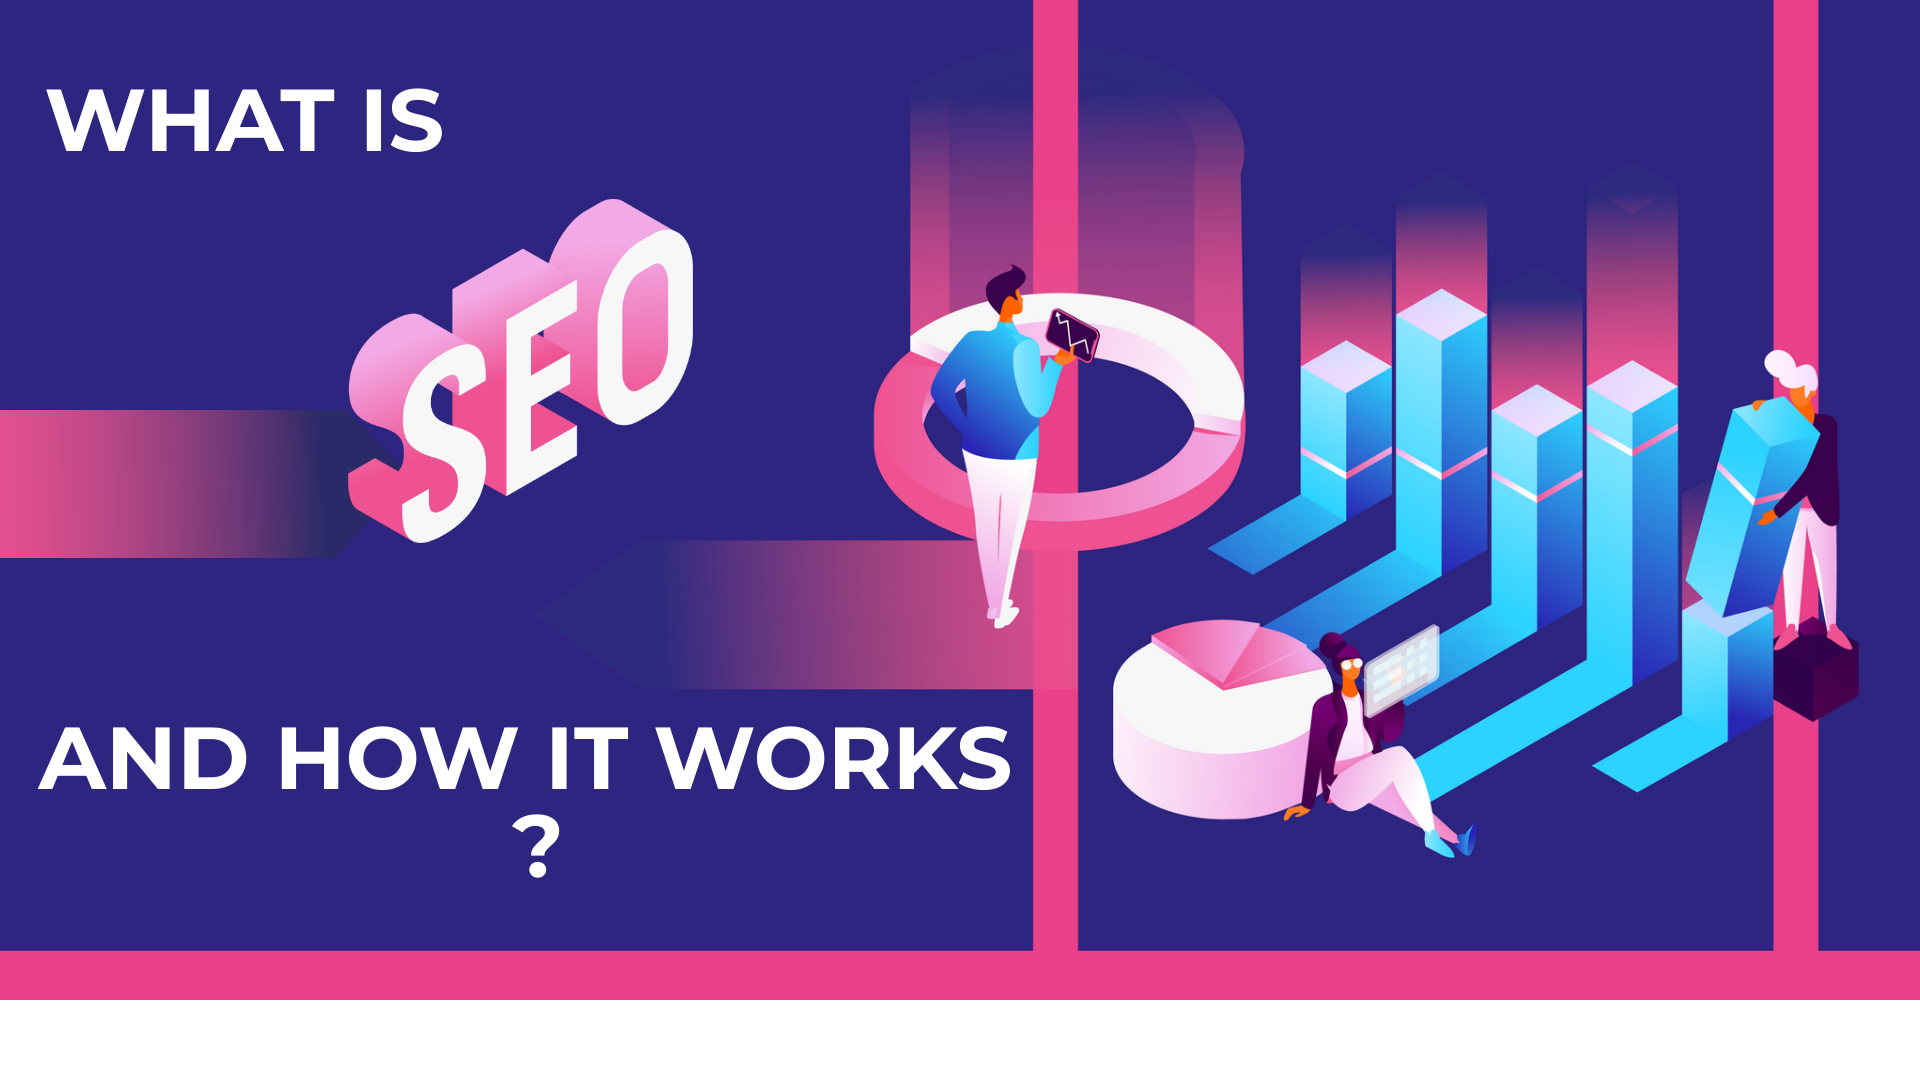 What is SEO? And how it works?